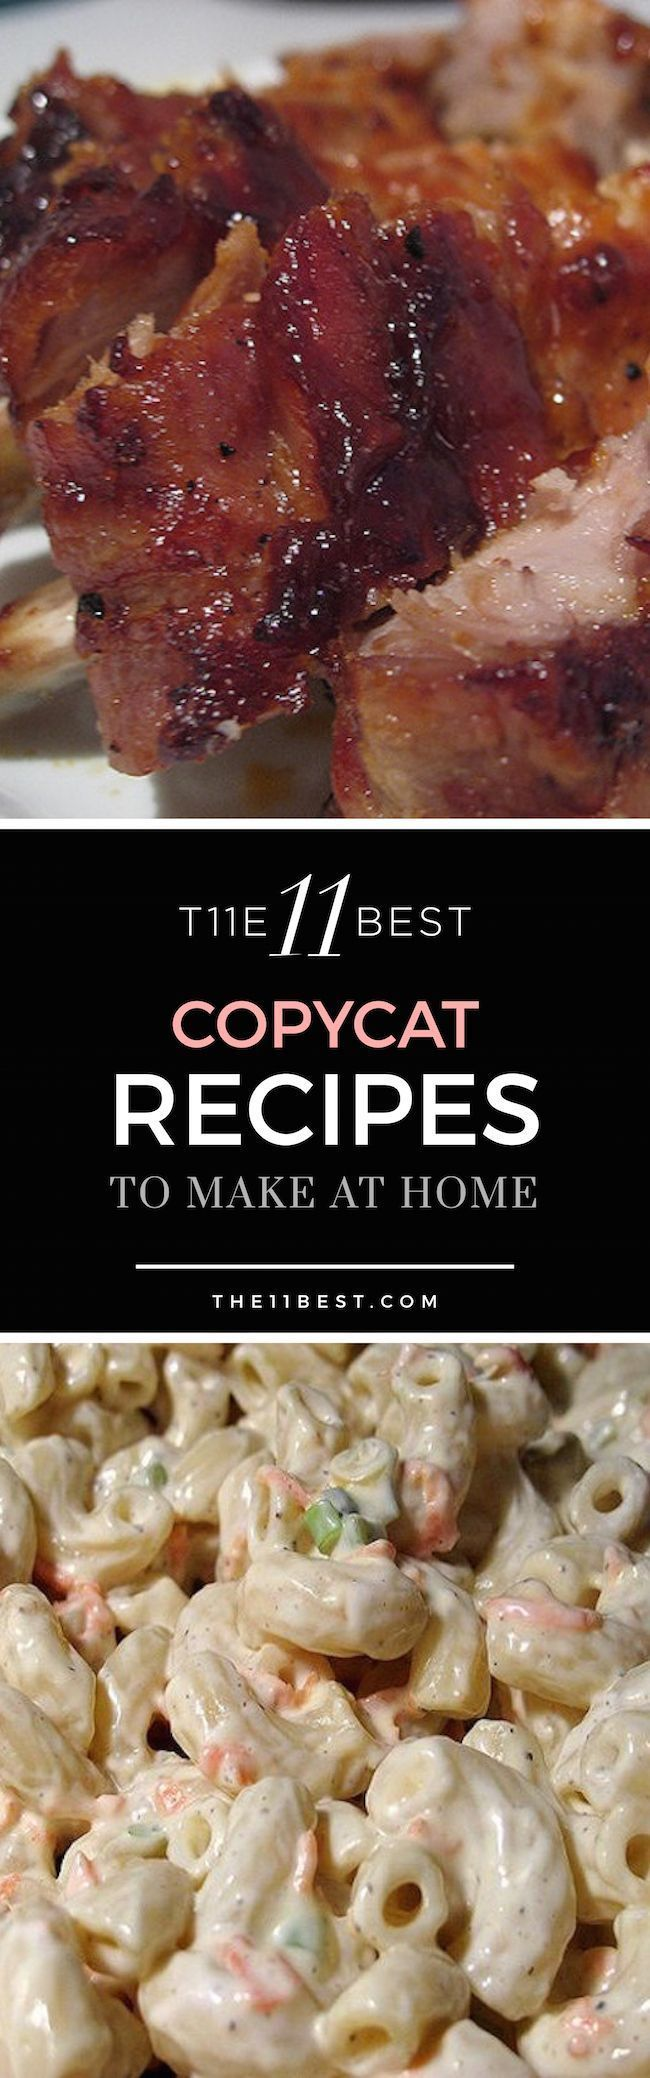 The 11 Best Copycat Recipes to Make at Home